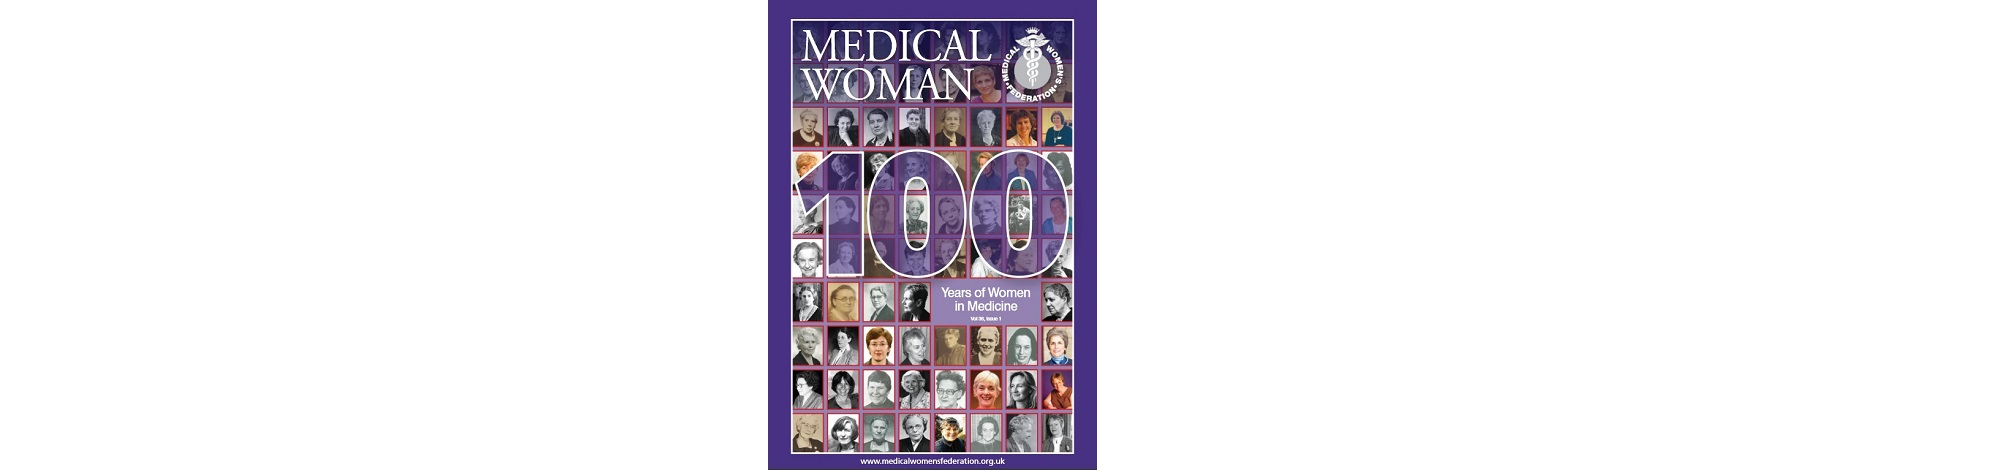 Dr Kate Lovett features in latest Medical Women special edition